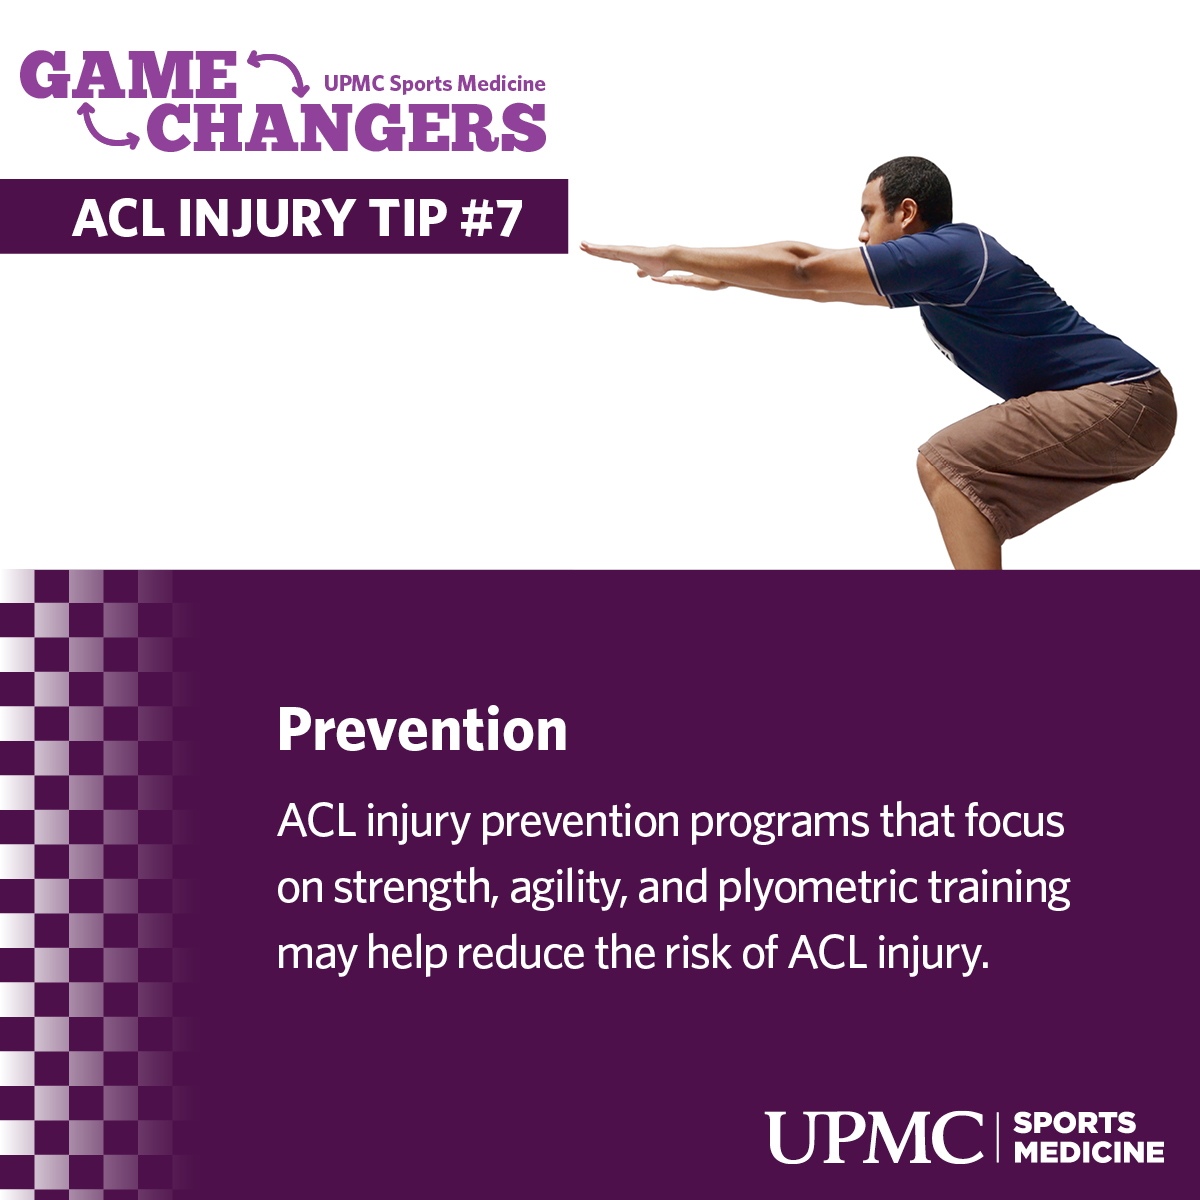 UPMC_GameChangers_ACL_FB7_FINAL